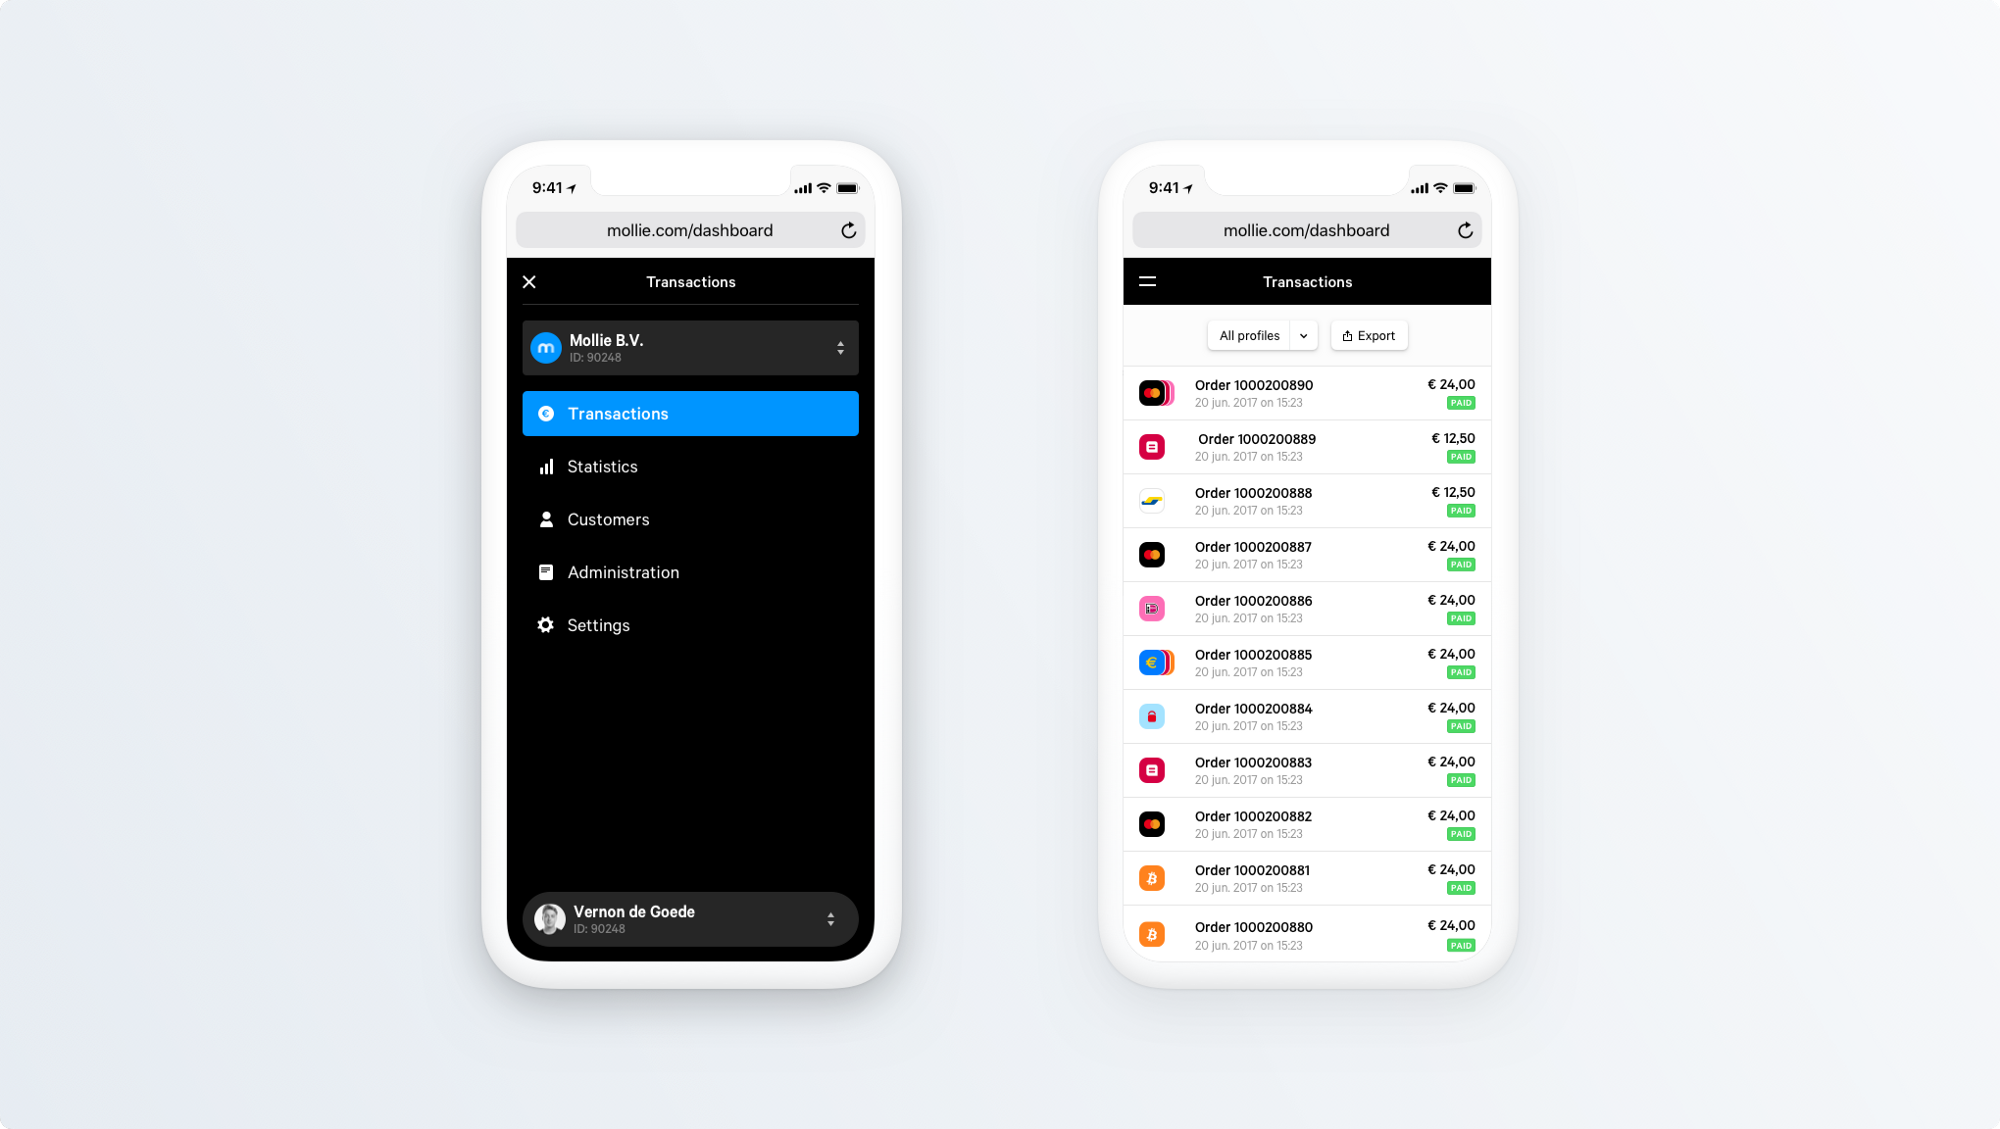 Dashboard for mobile.